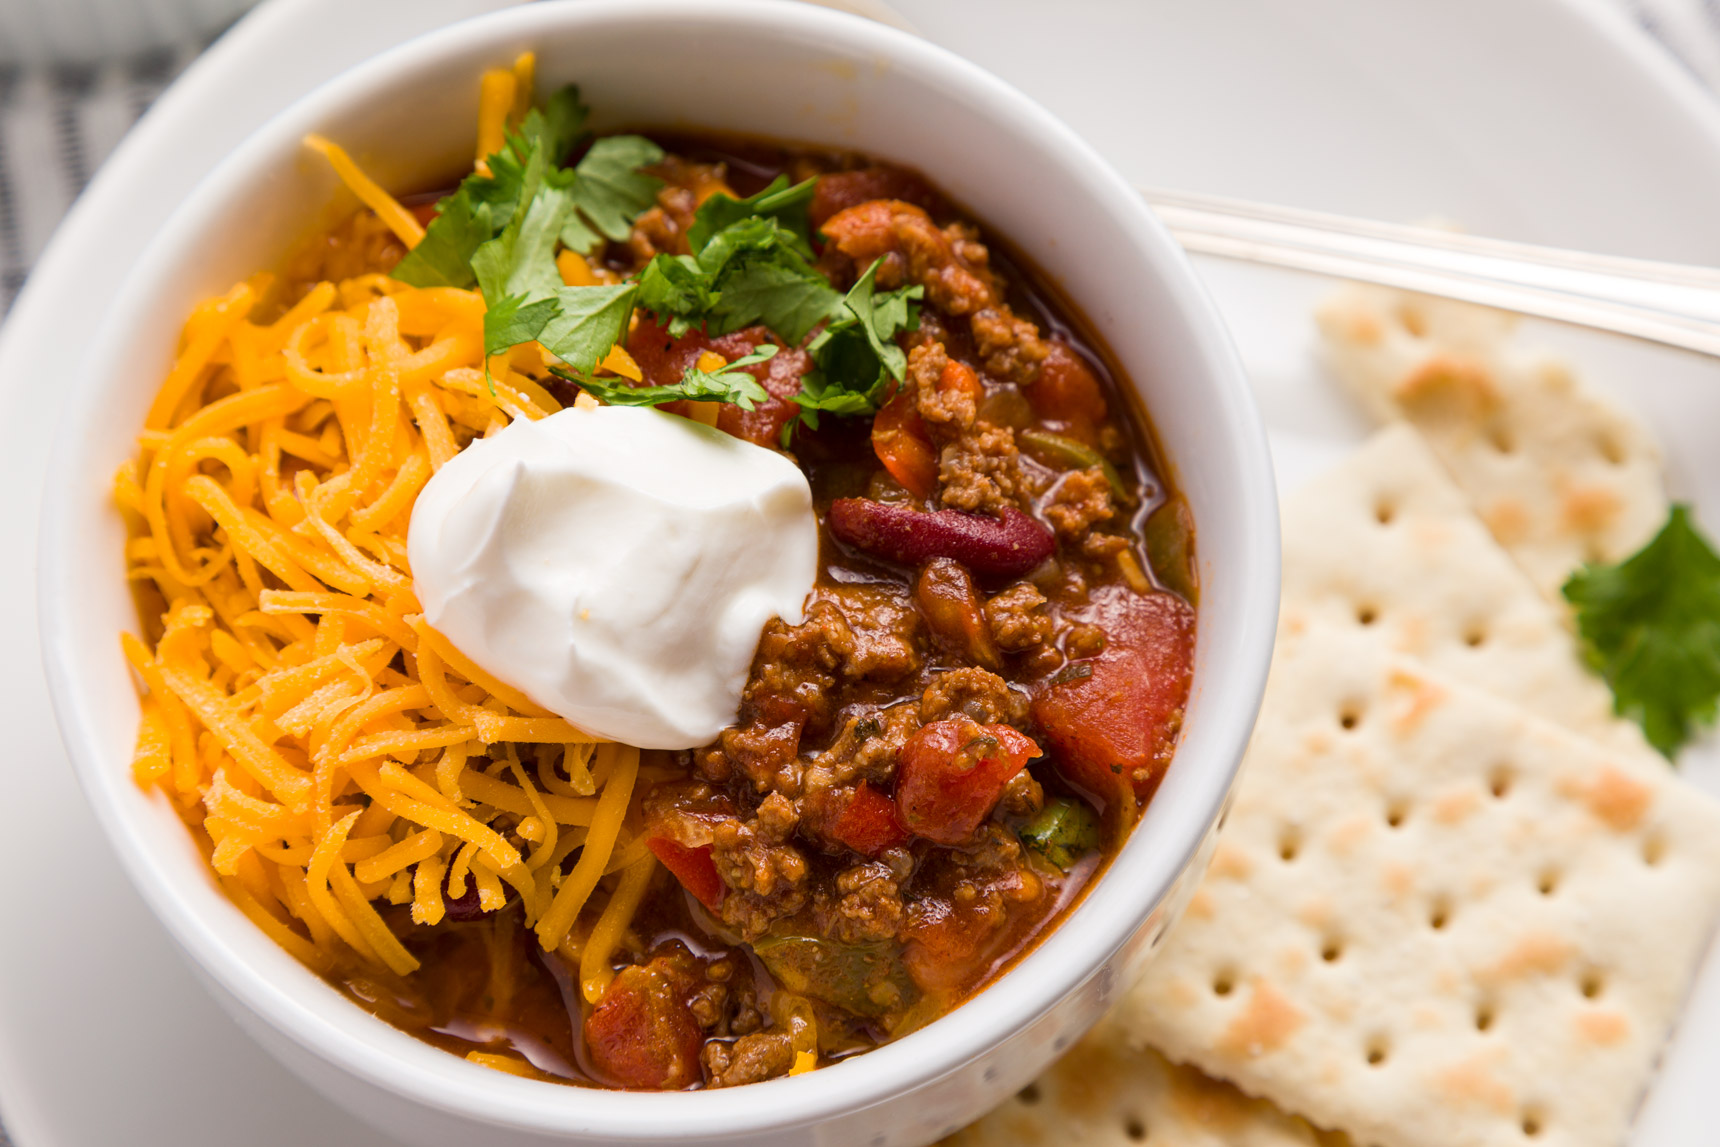 Crock Pot Chili by Kippi at Home - WEEKEND POTLUCK 450